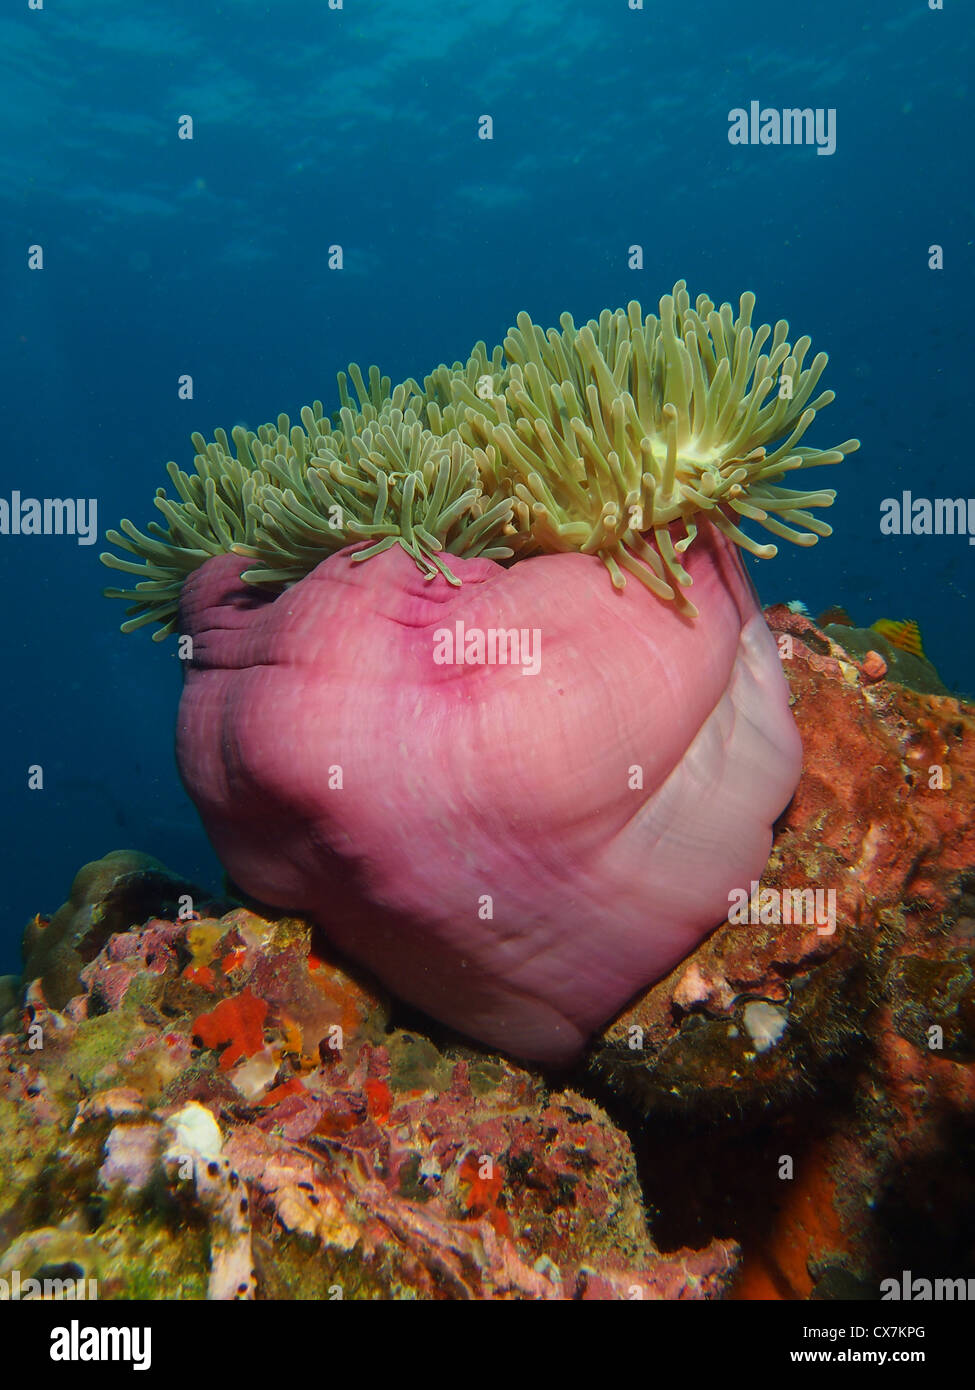 Sea Anemone on a Coral Reef - Stock Image